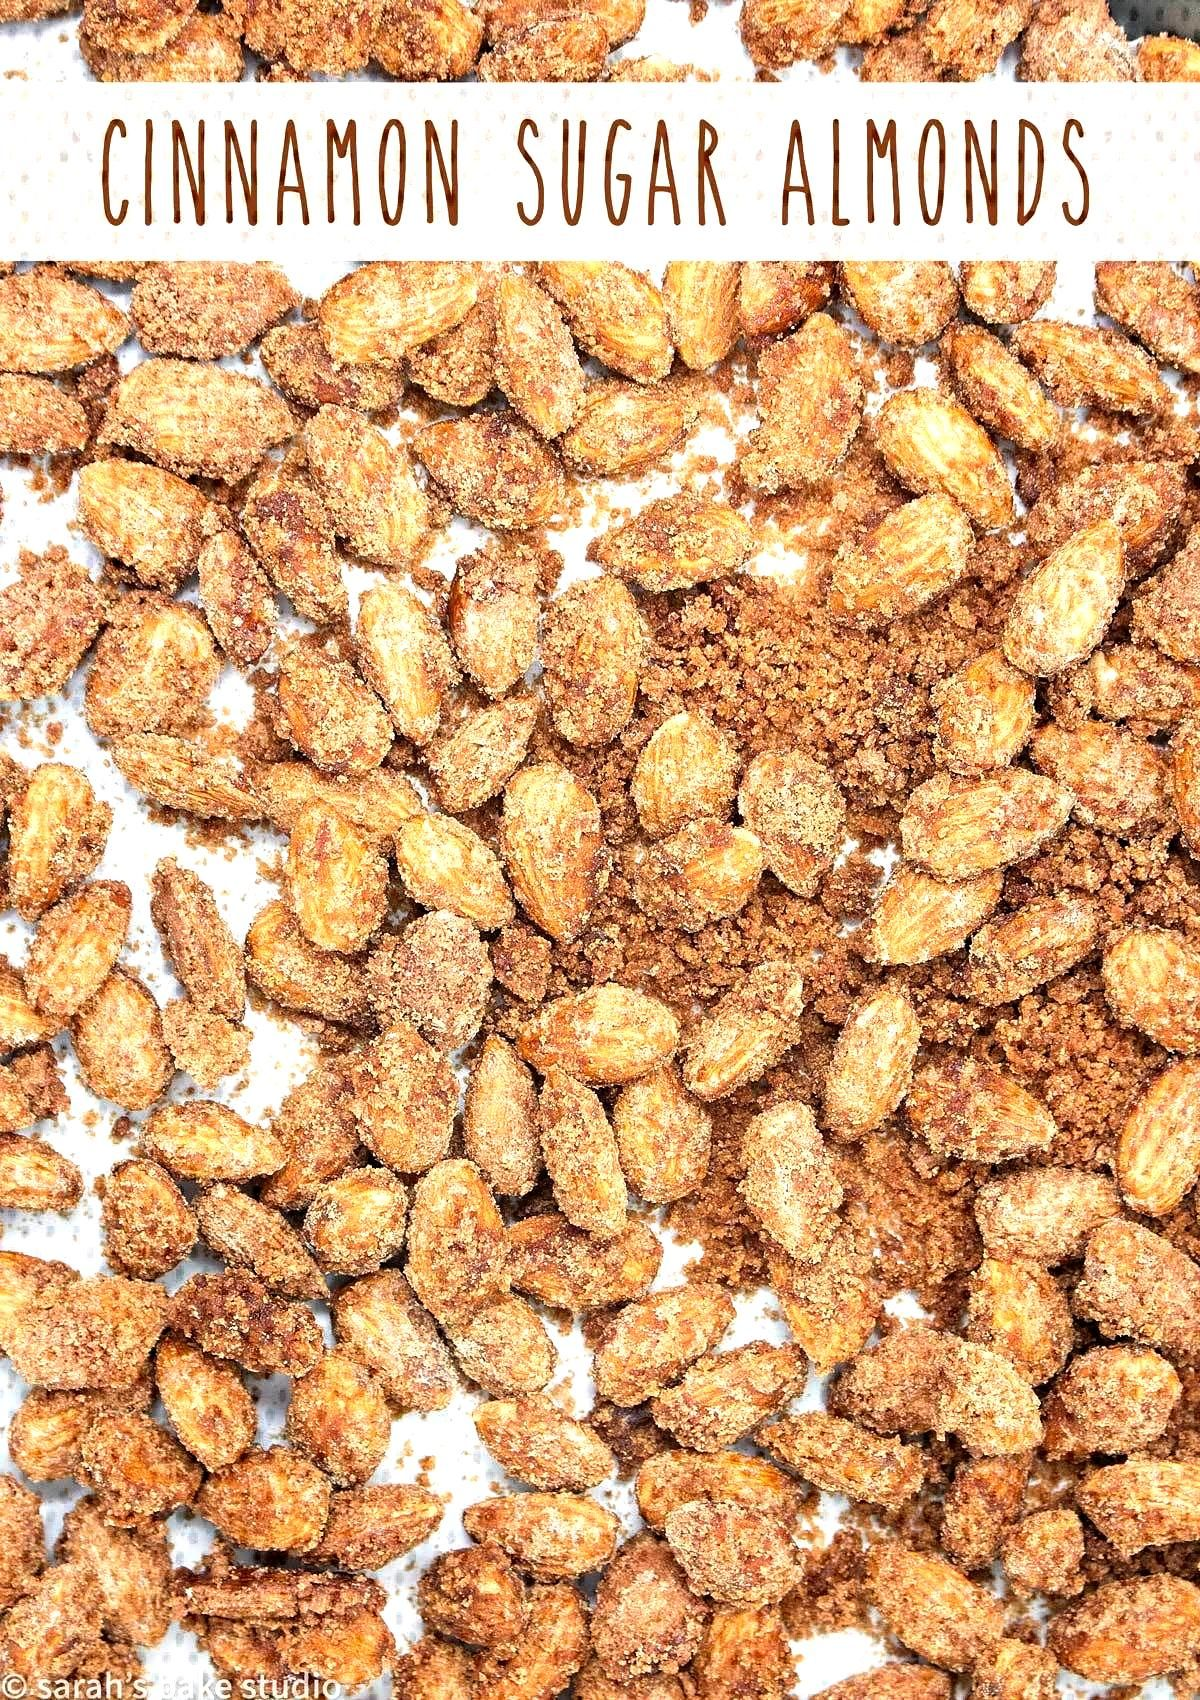 Cinnamon Sugar Almonds Cinnamon Sugar Almonds – crunchy almonds coated with cinnamon and sugar; a